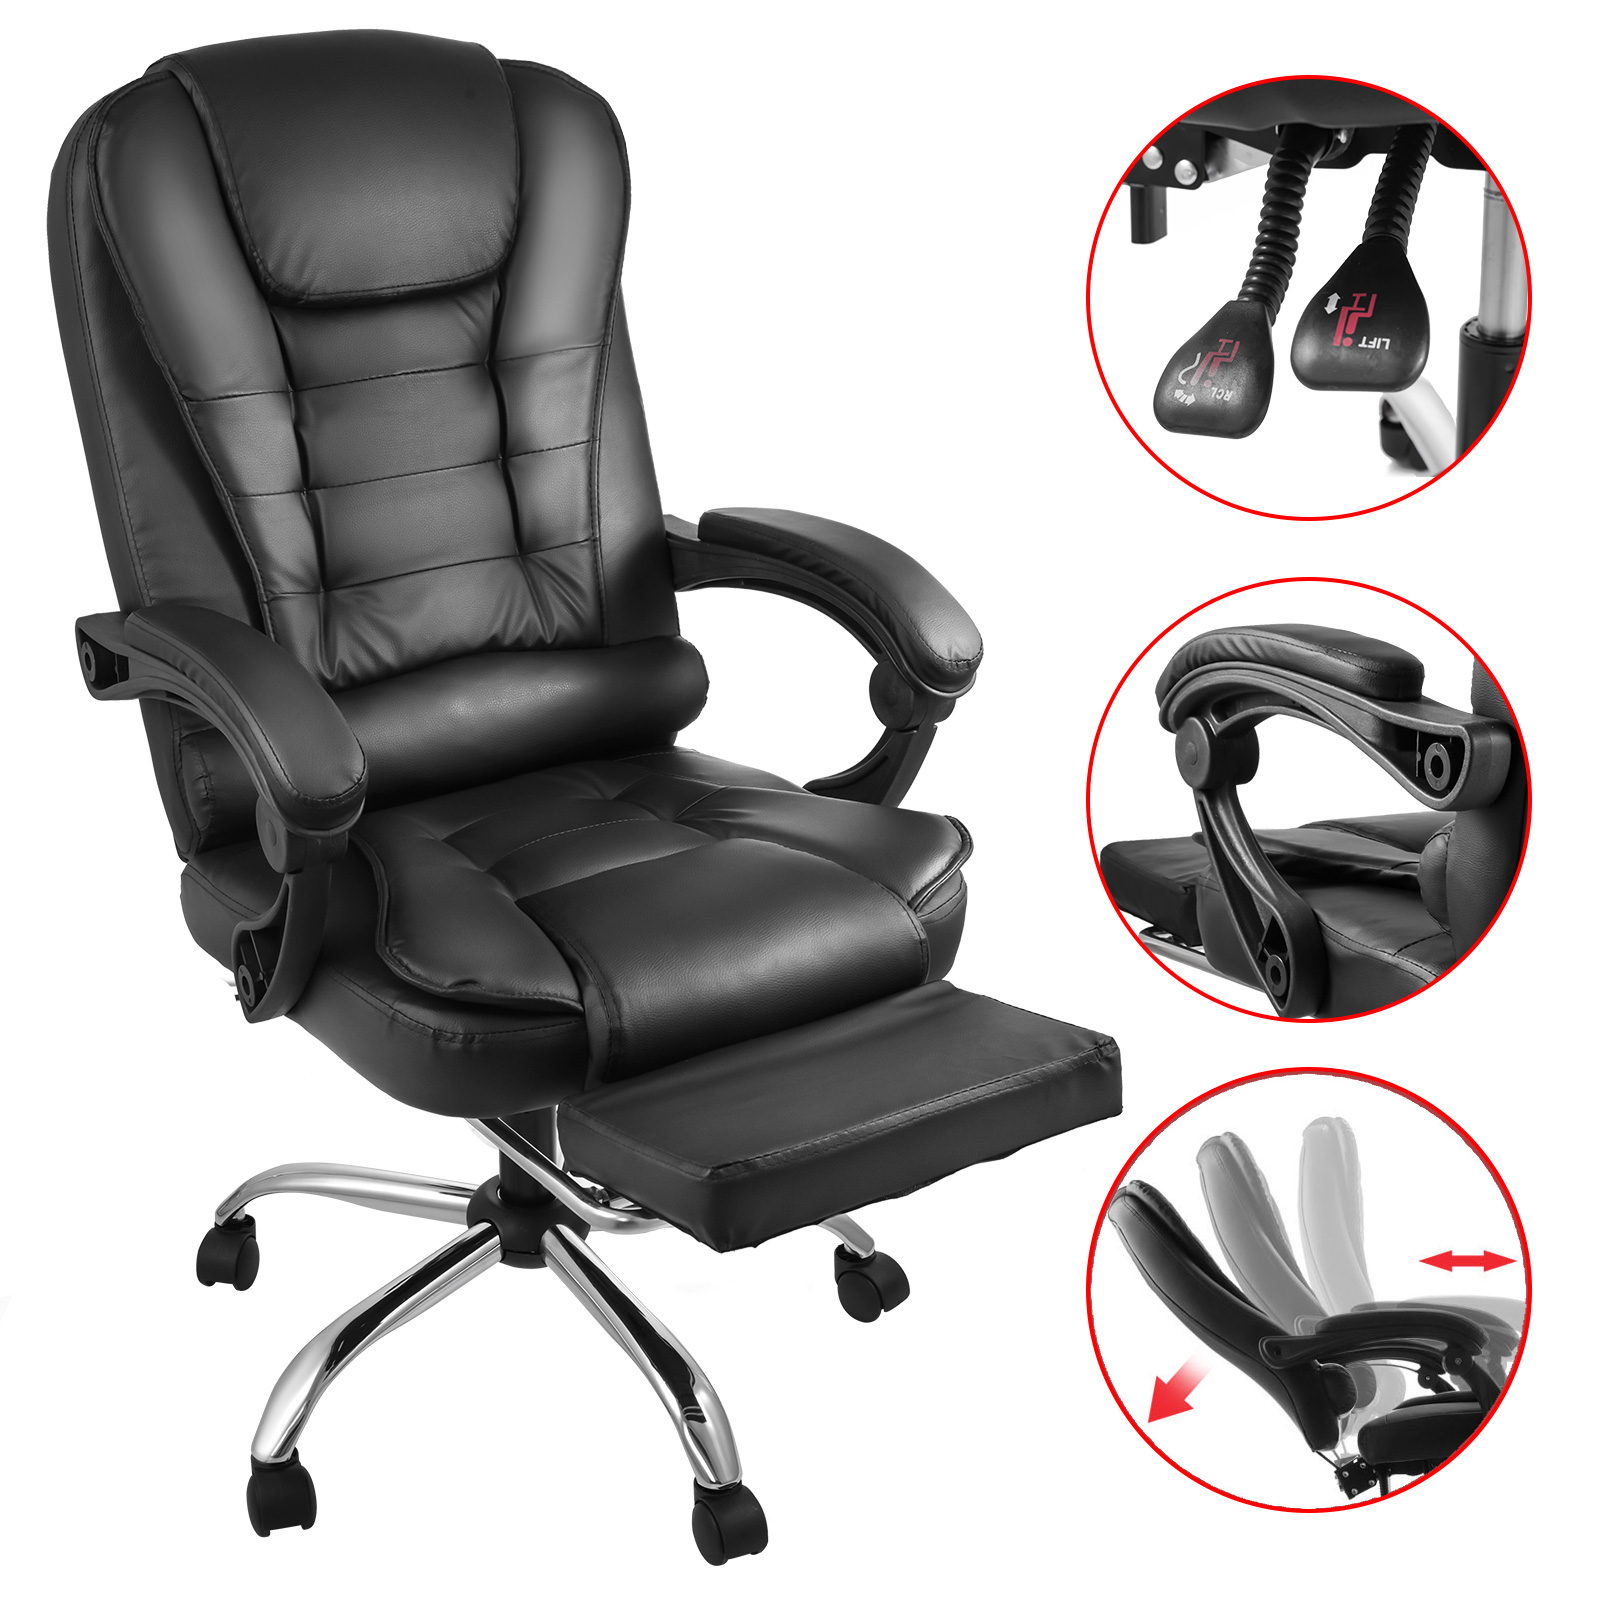 Chair Leather Reclining Swivel Details About Executive High Back Leather Reclining Office Chair Ergonomic Footrest Armchair